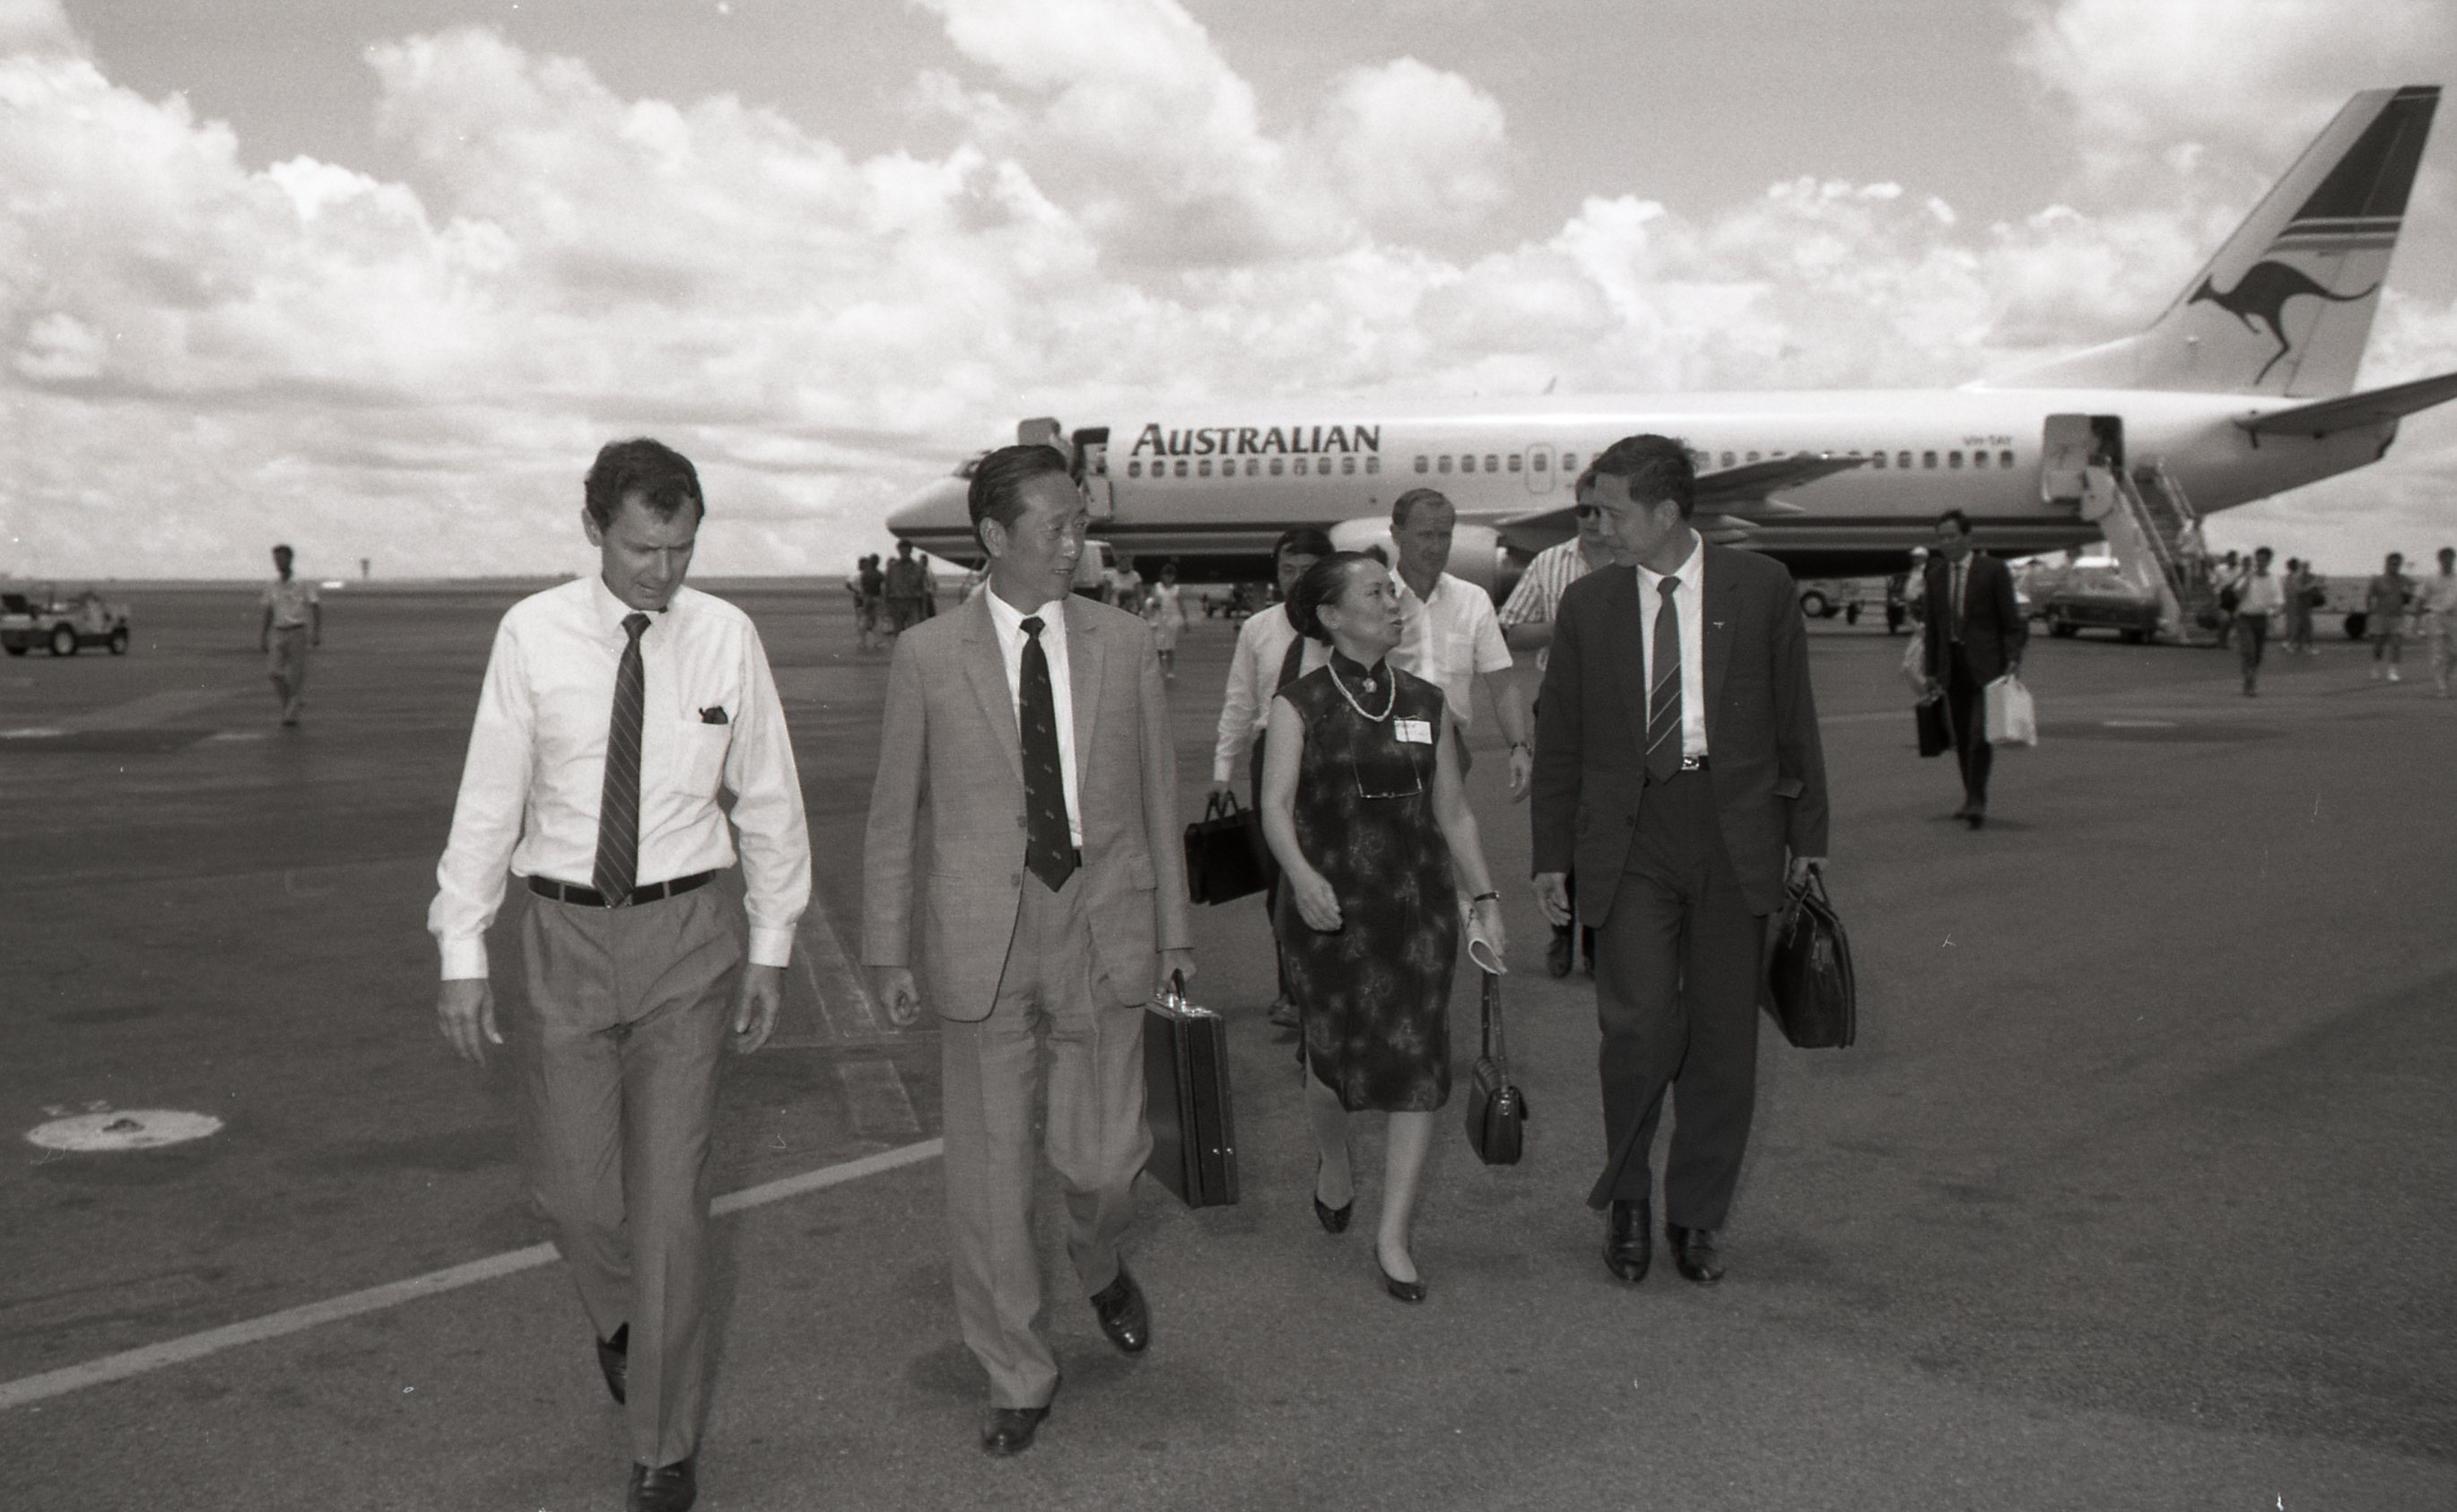 Chief Minister Marshall Perron meets Mr Zhang Haorou, Governor of Sichuan Province, Darwin Airport, 22 February 1989<br />Image courtesy of Library & Archives NT,  Department of the Chief Minister, NTRS 3823 P1, Box 11, BW2796, Image 6a